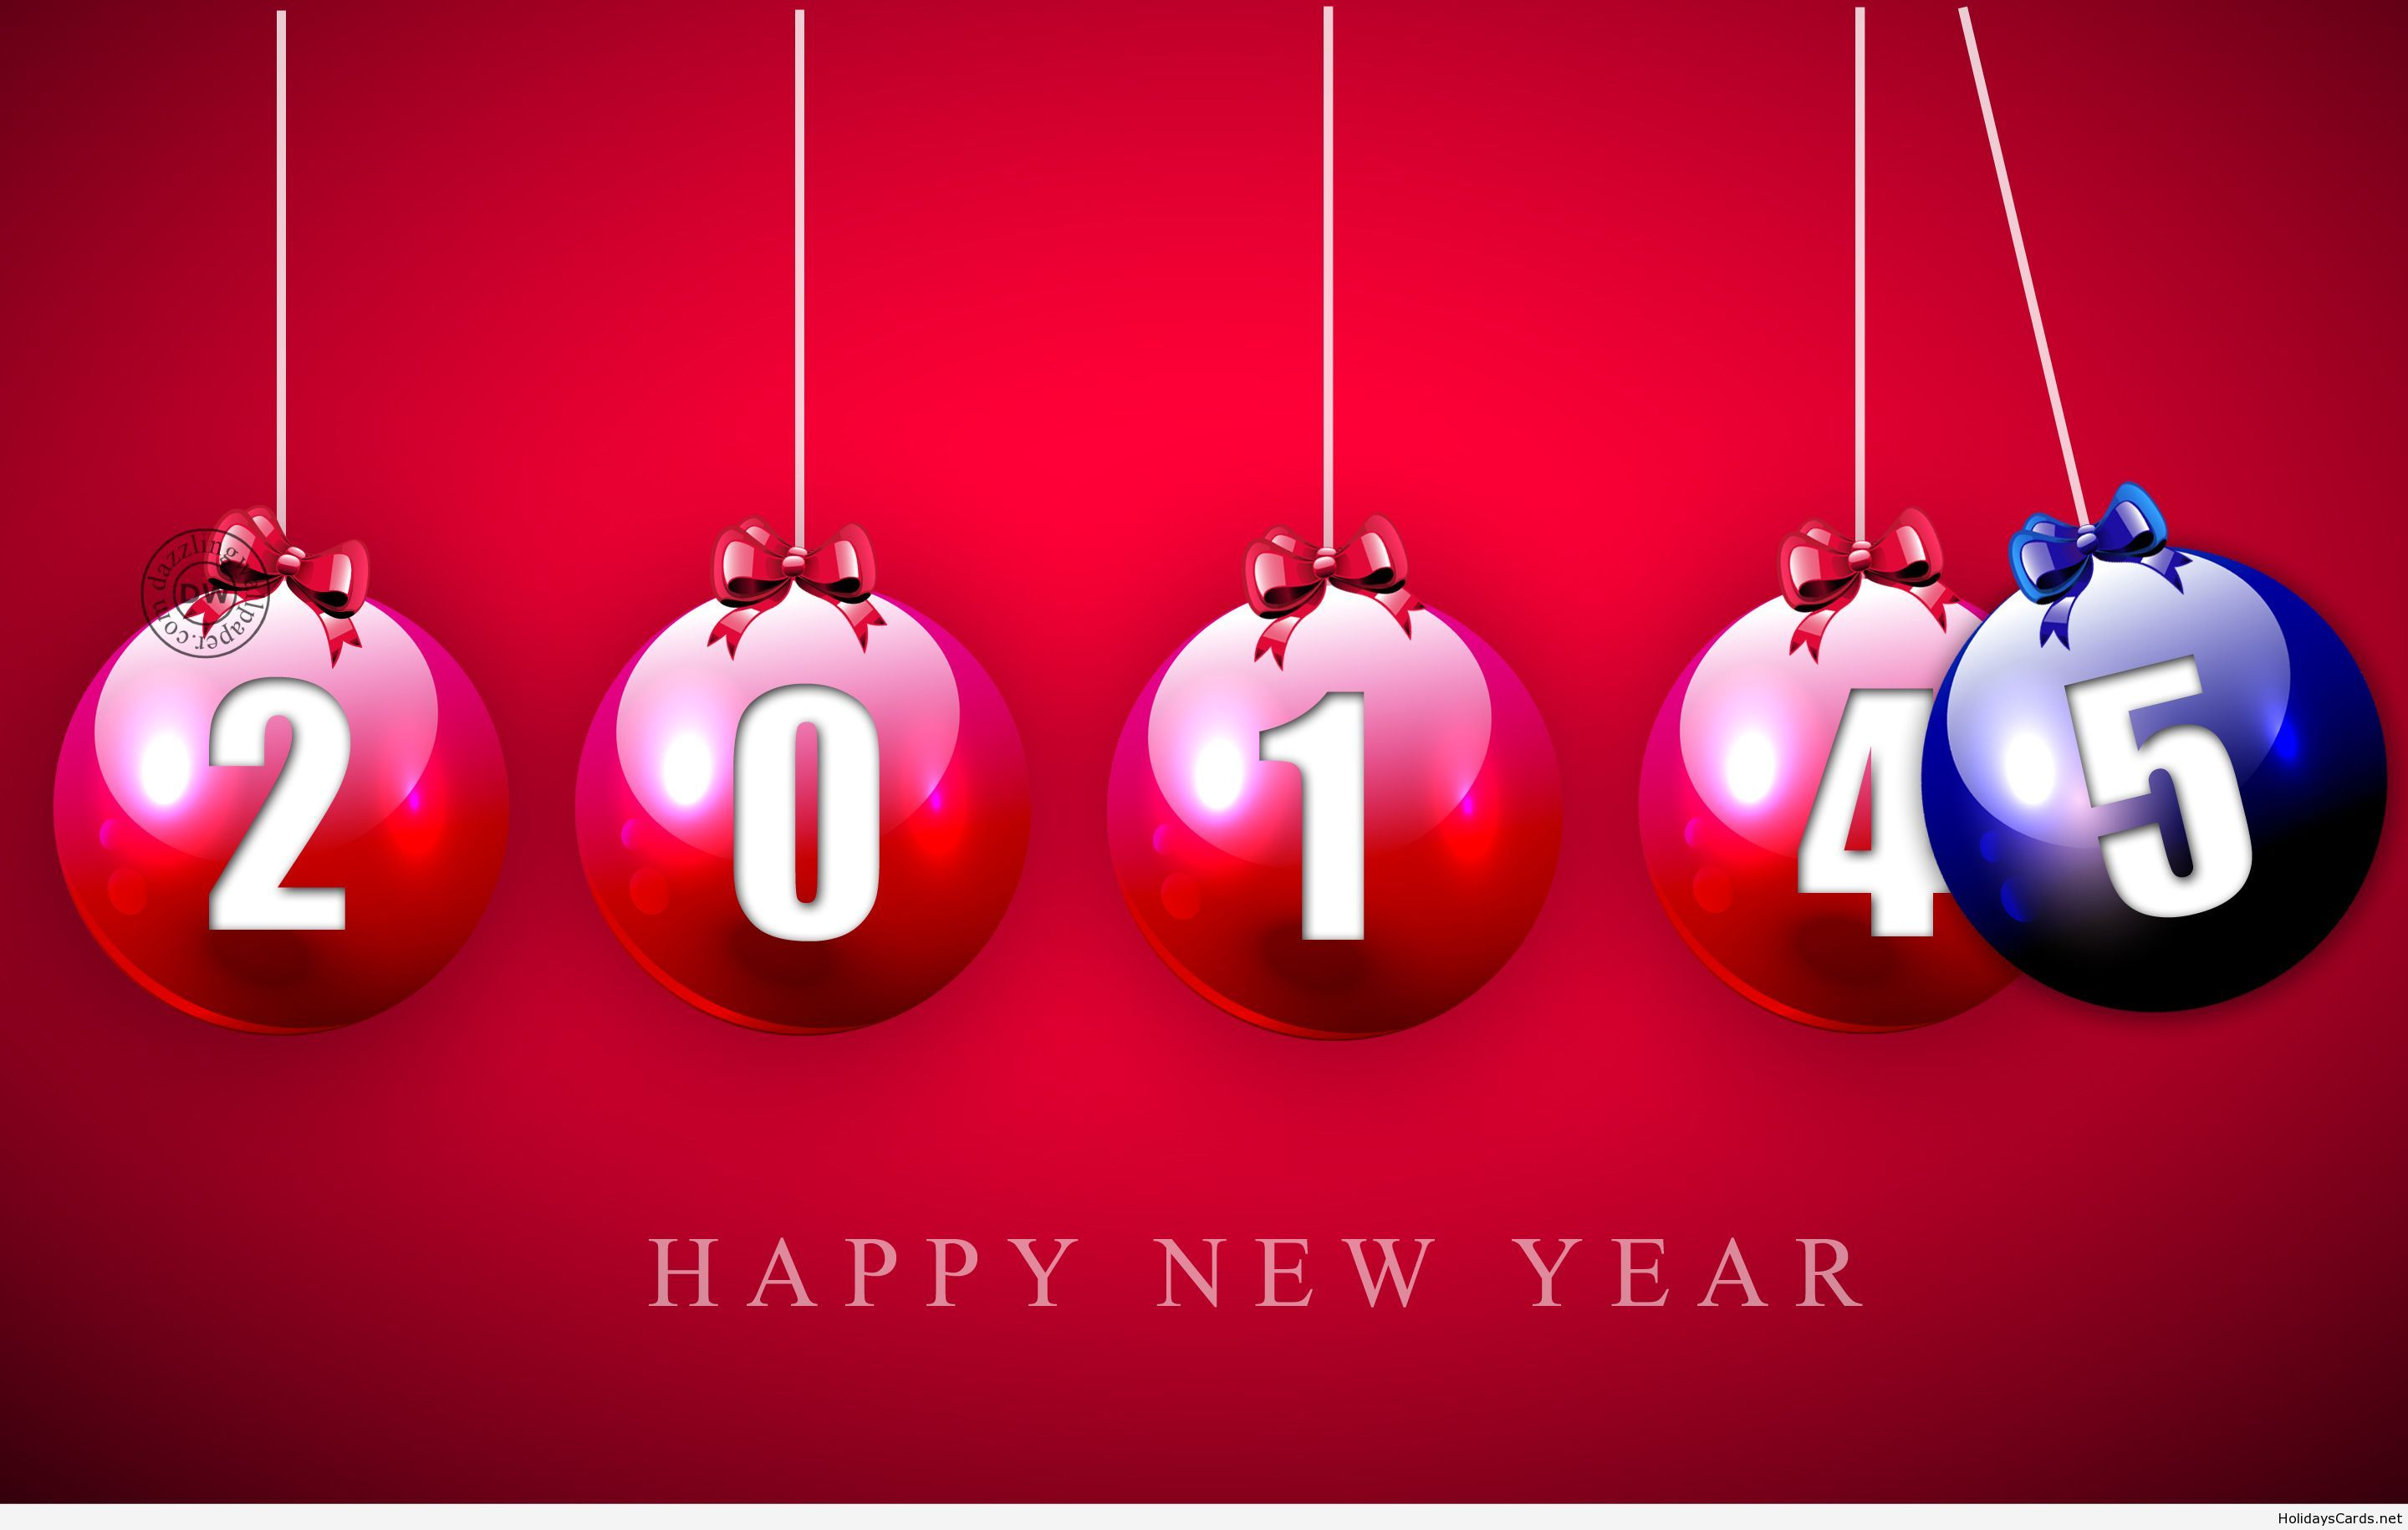 cards 2015 wishes 2015 new year wishes new year cards new year